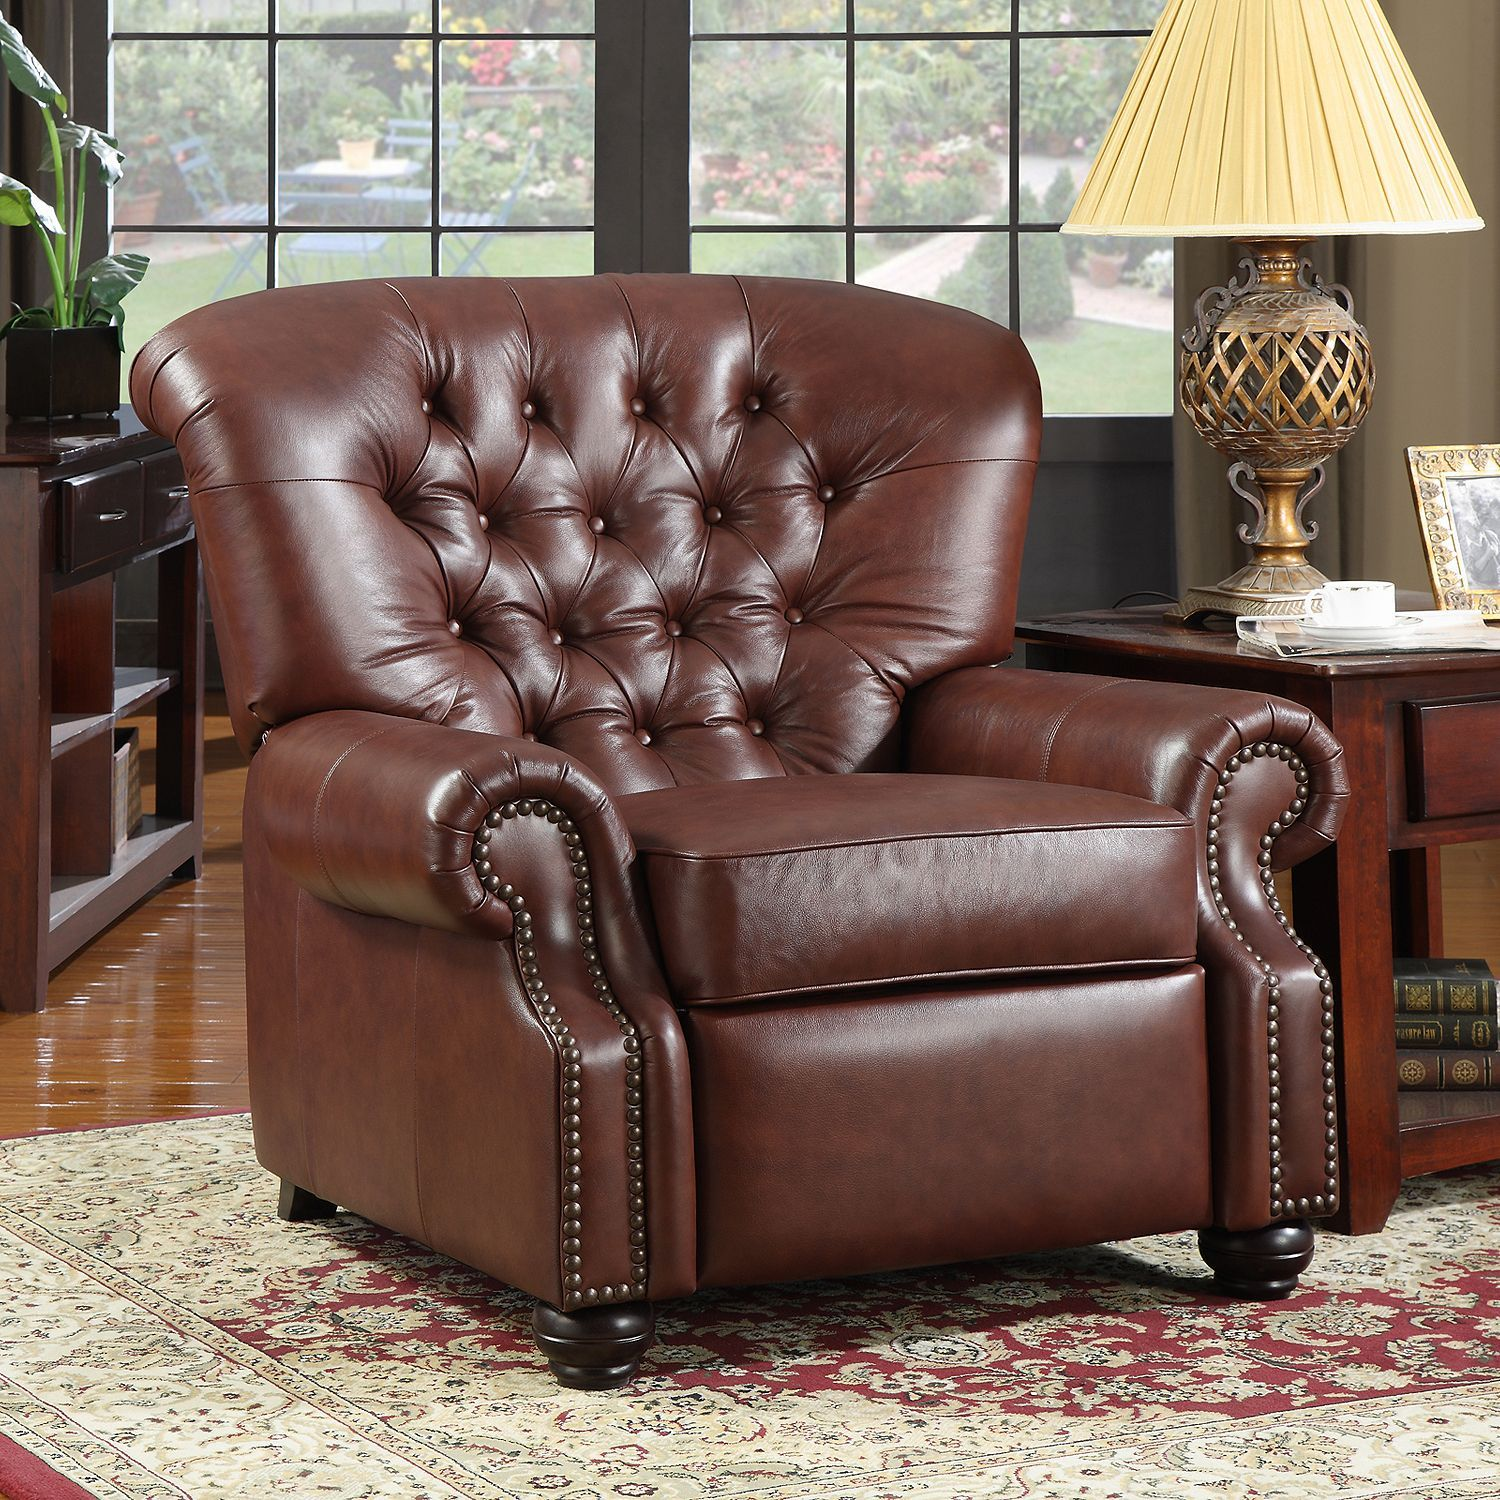 Monticello Pushback Recliner Leather